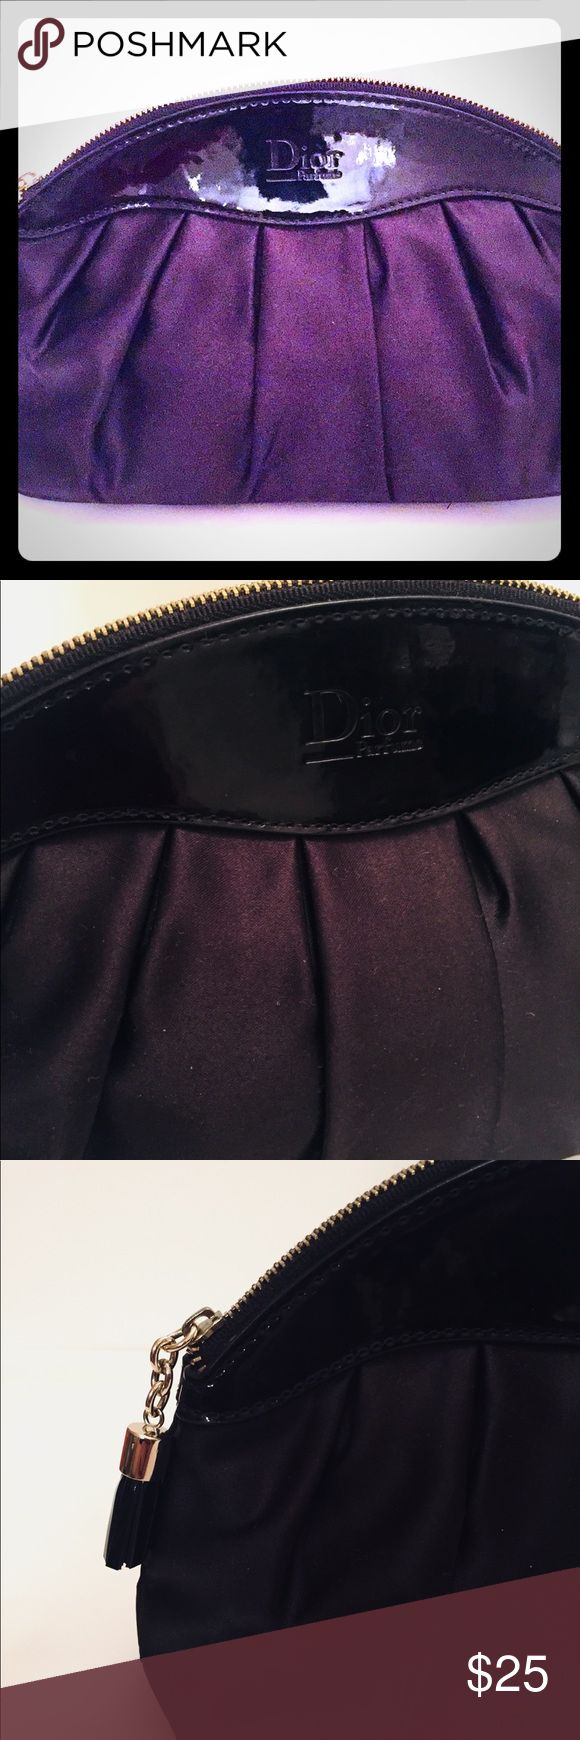 Dior Perfume Cosmetic Case Pretty Dior Cosmetic Case, satin like material, patent material trim, tassel zipper pull, nice clean interior material and condition. Dior Perfume Bags Cosmetic Bags & Cases